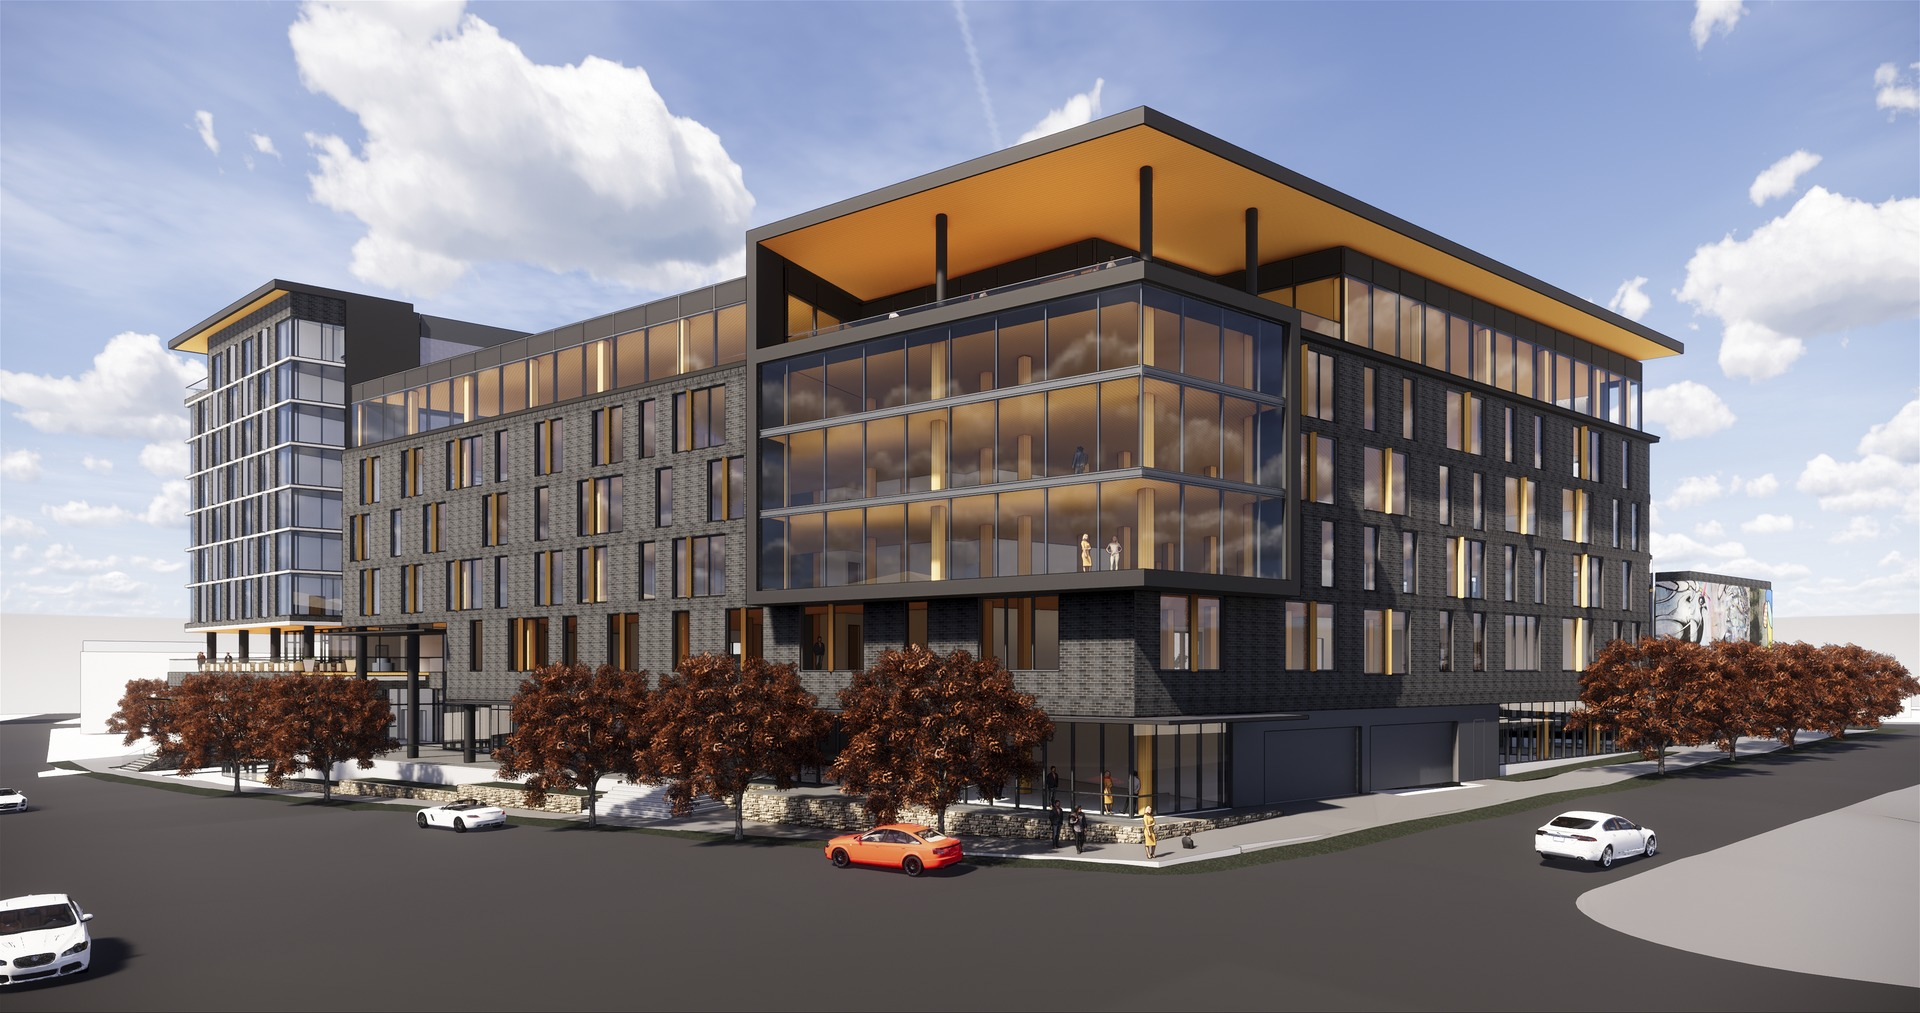 Rendering of multistory building comprised of timber.